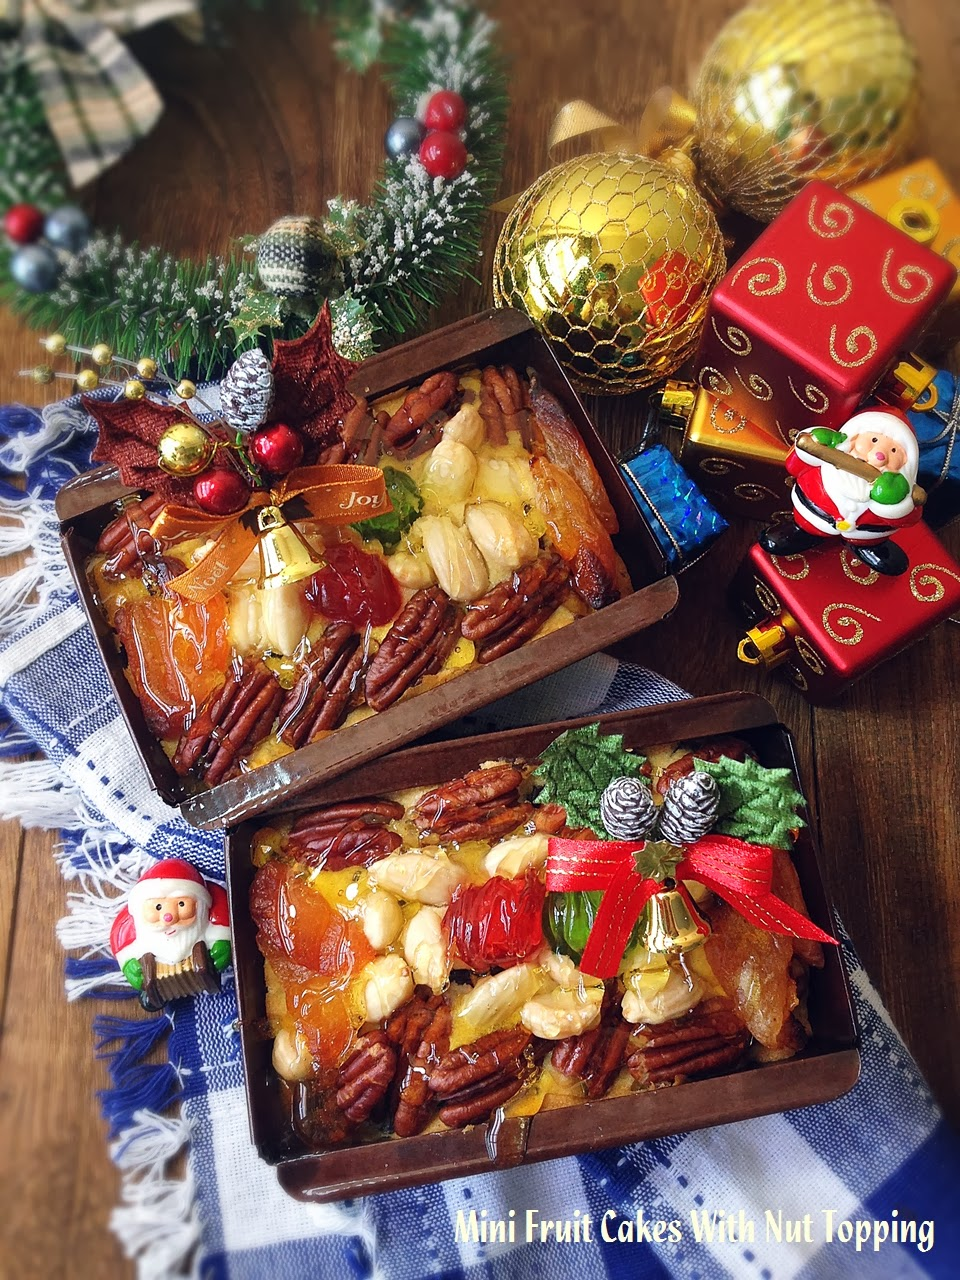 Christmas Cake Decoration Nuts : Cuisine Paradise Singapore Food Blog Recipes, Reviews ...